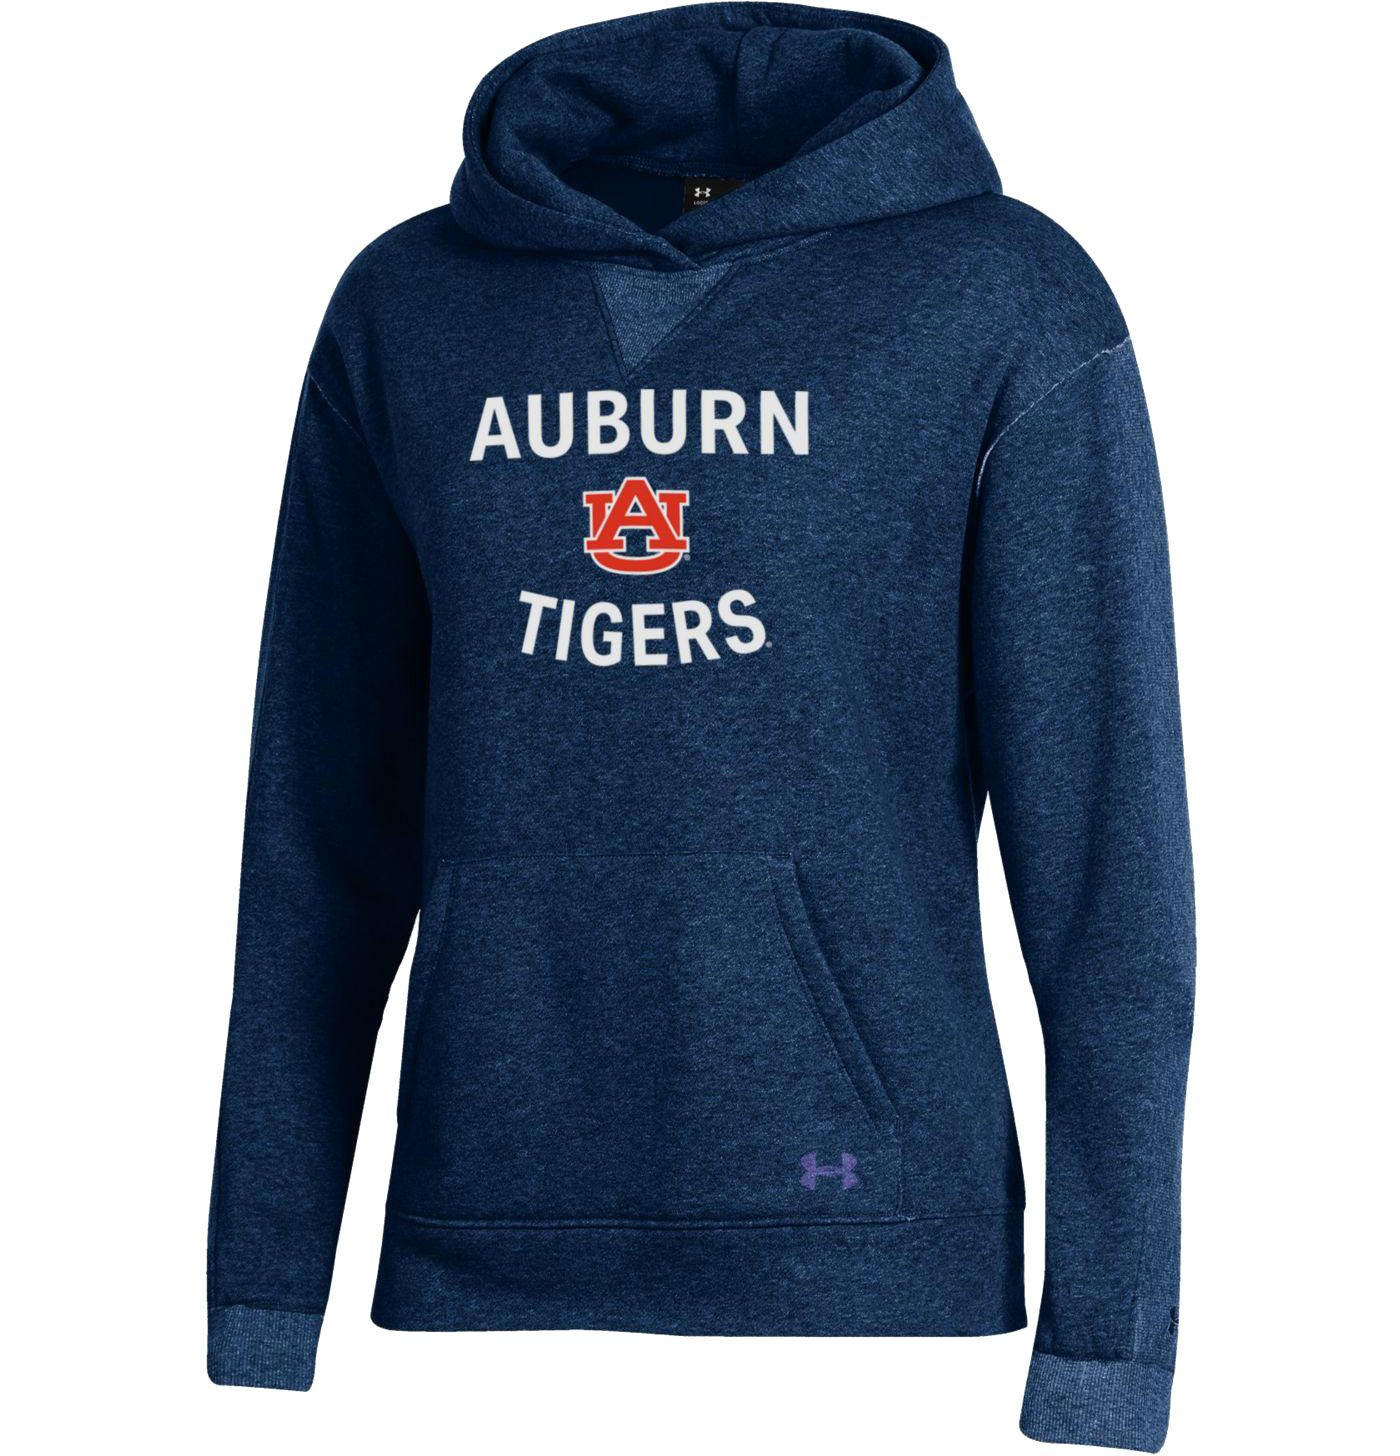 Under Armour Women's Auburn Tigers Blue All Day Hoodie